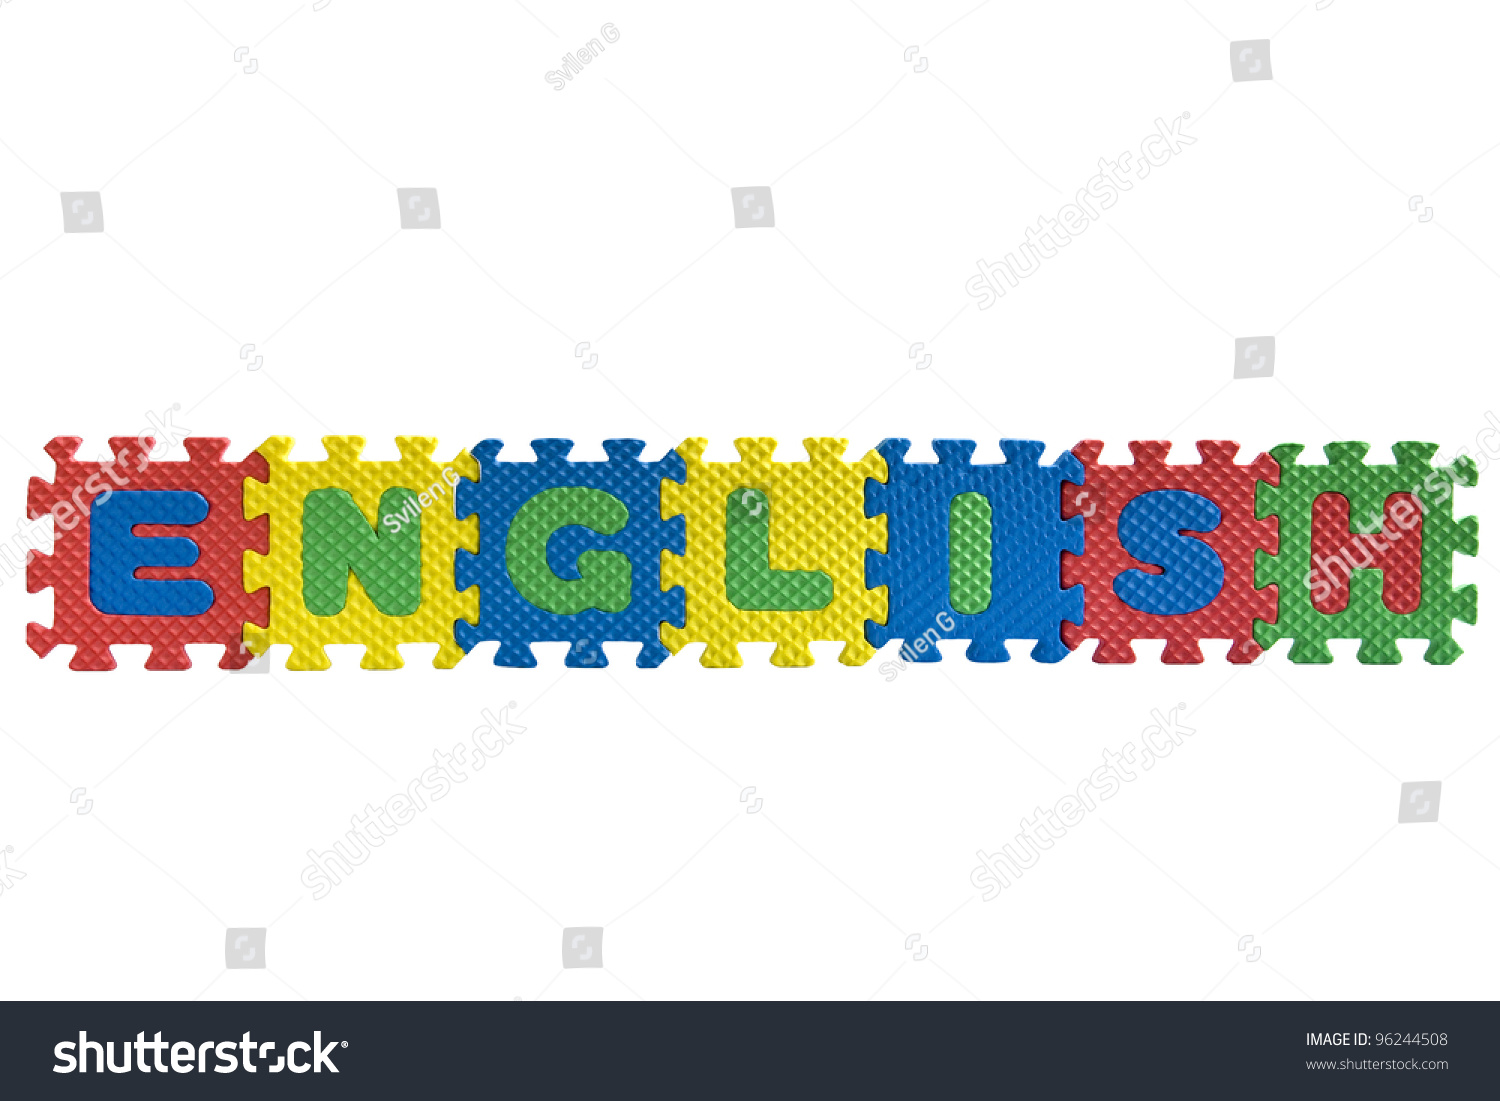 Word English Written Alphabet Puzzle Letters Stock Photo ...